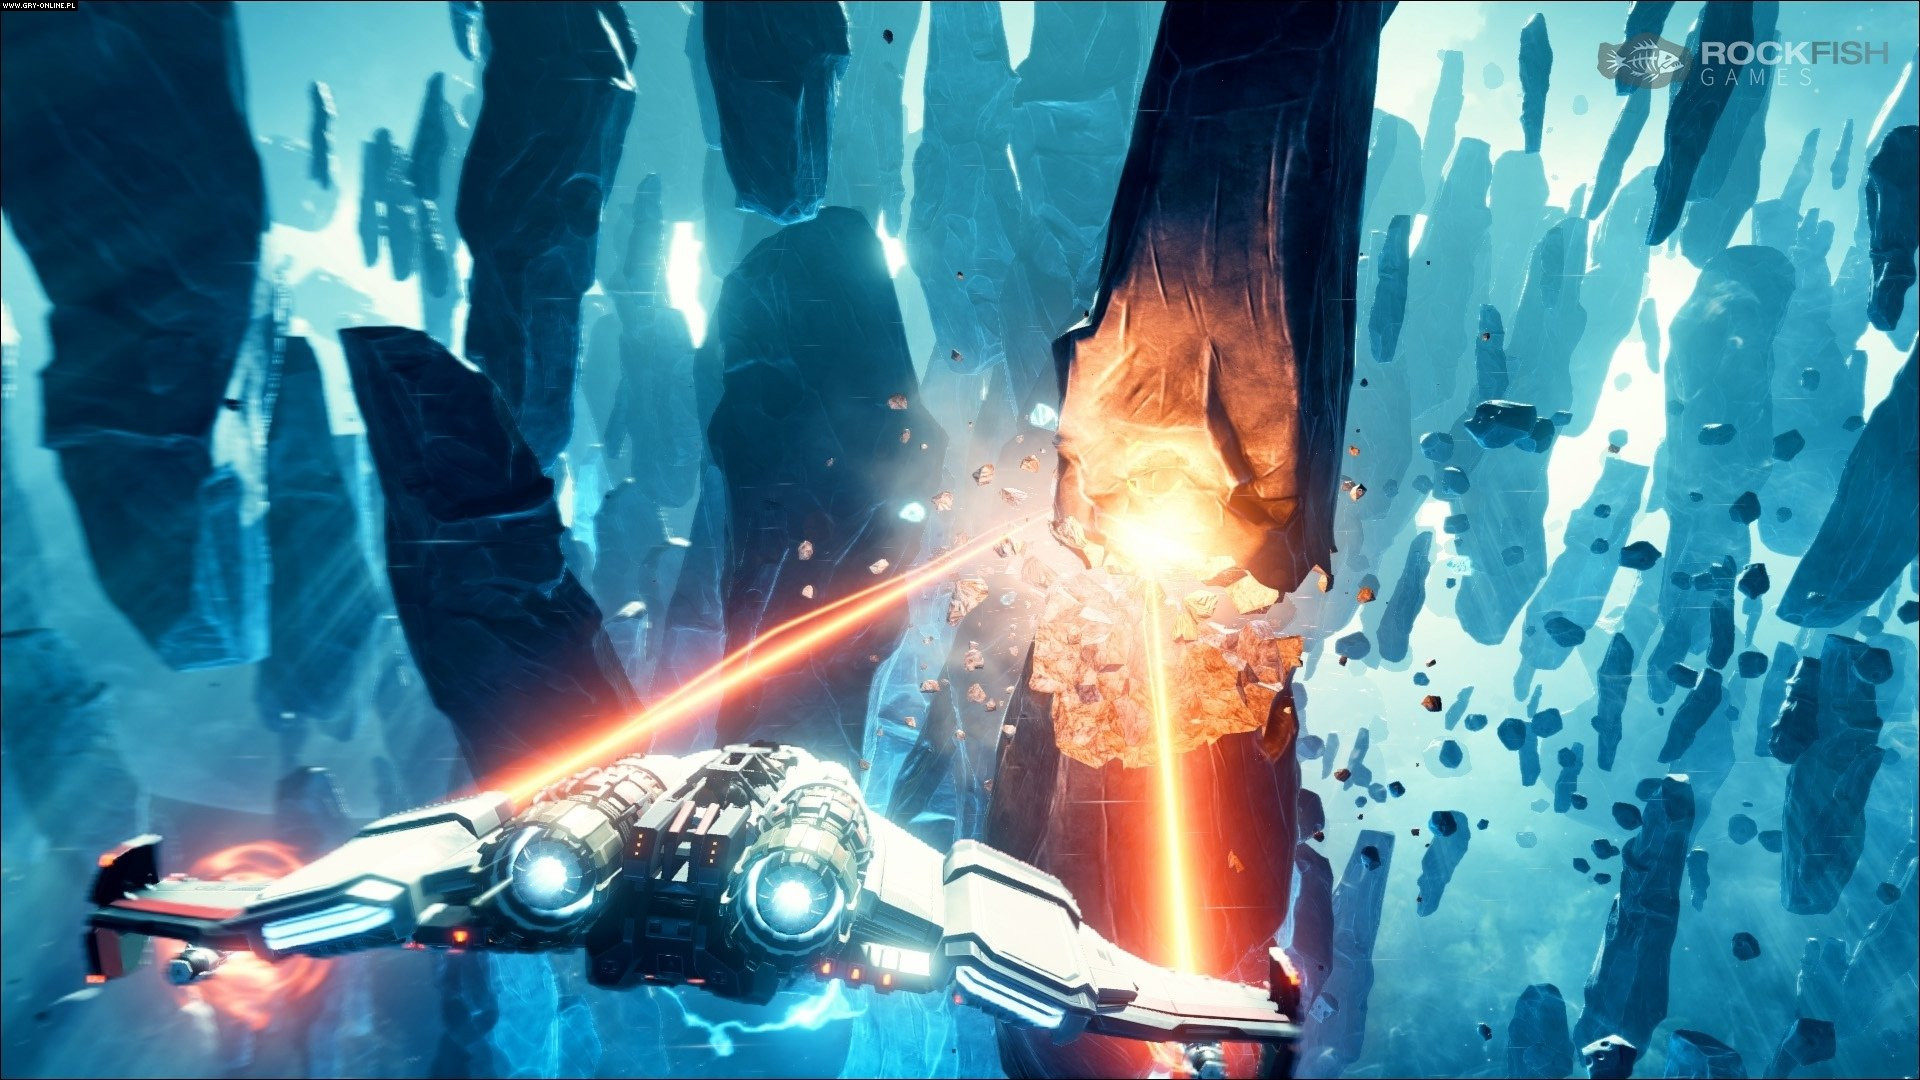 Everspace PC, PS4, XONE, Switch Gry Screen 99/104, Rockfish Games